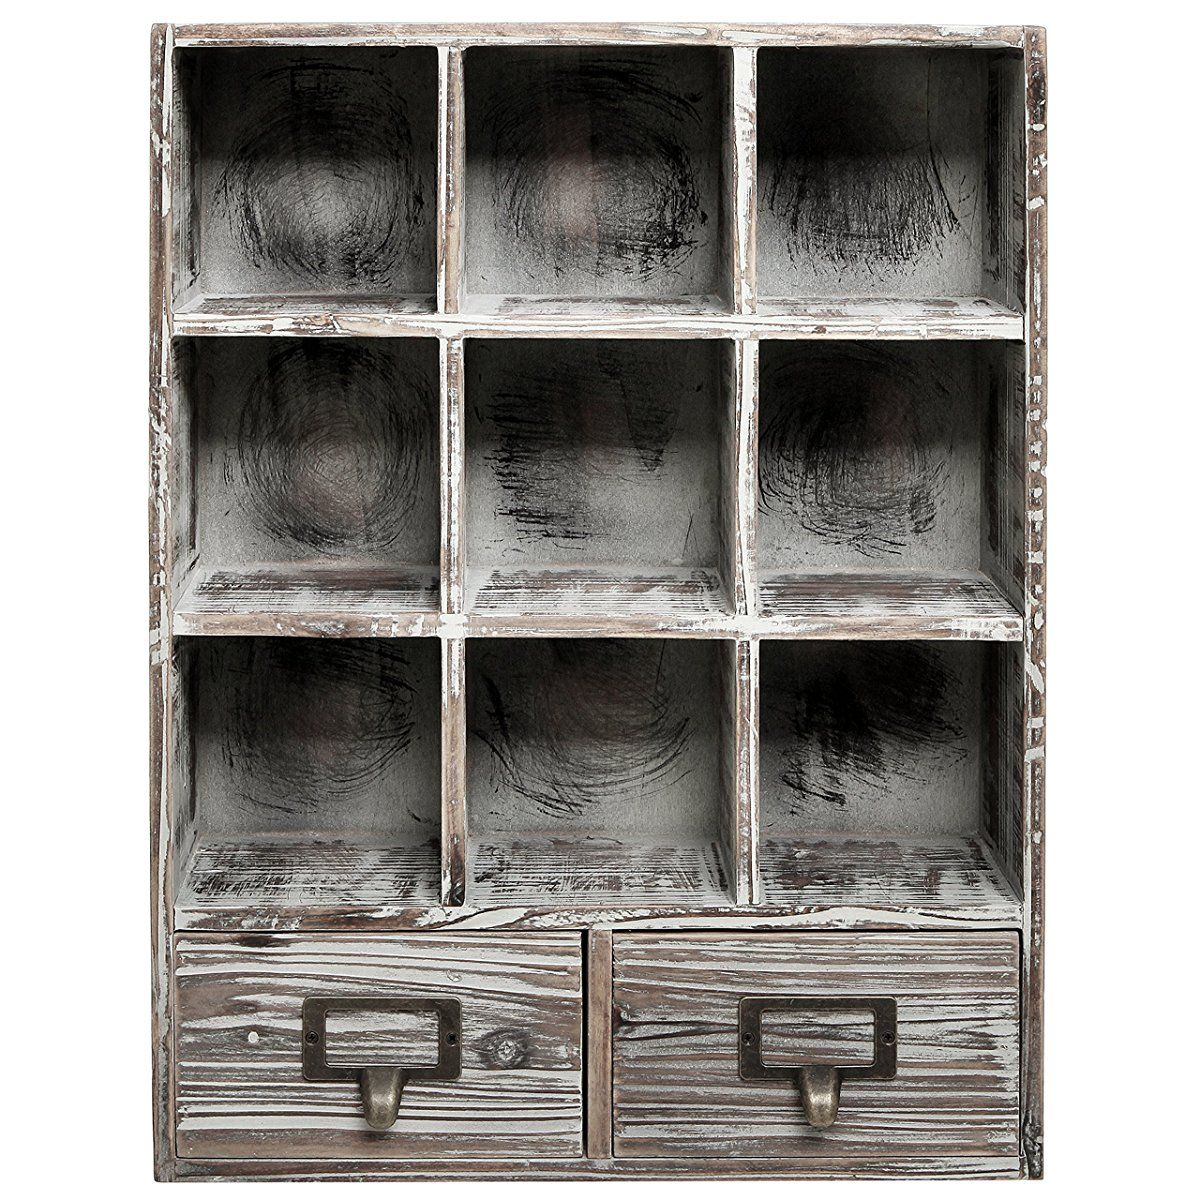 Rustic Dark Brown Wood Shadow Box 13x17 Inch Wall Mounted Cubby Storage With 2 Drawers Label Holders Wood Shadow Box Rustic Wall Shelves Cubby Storage